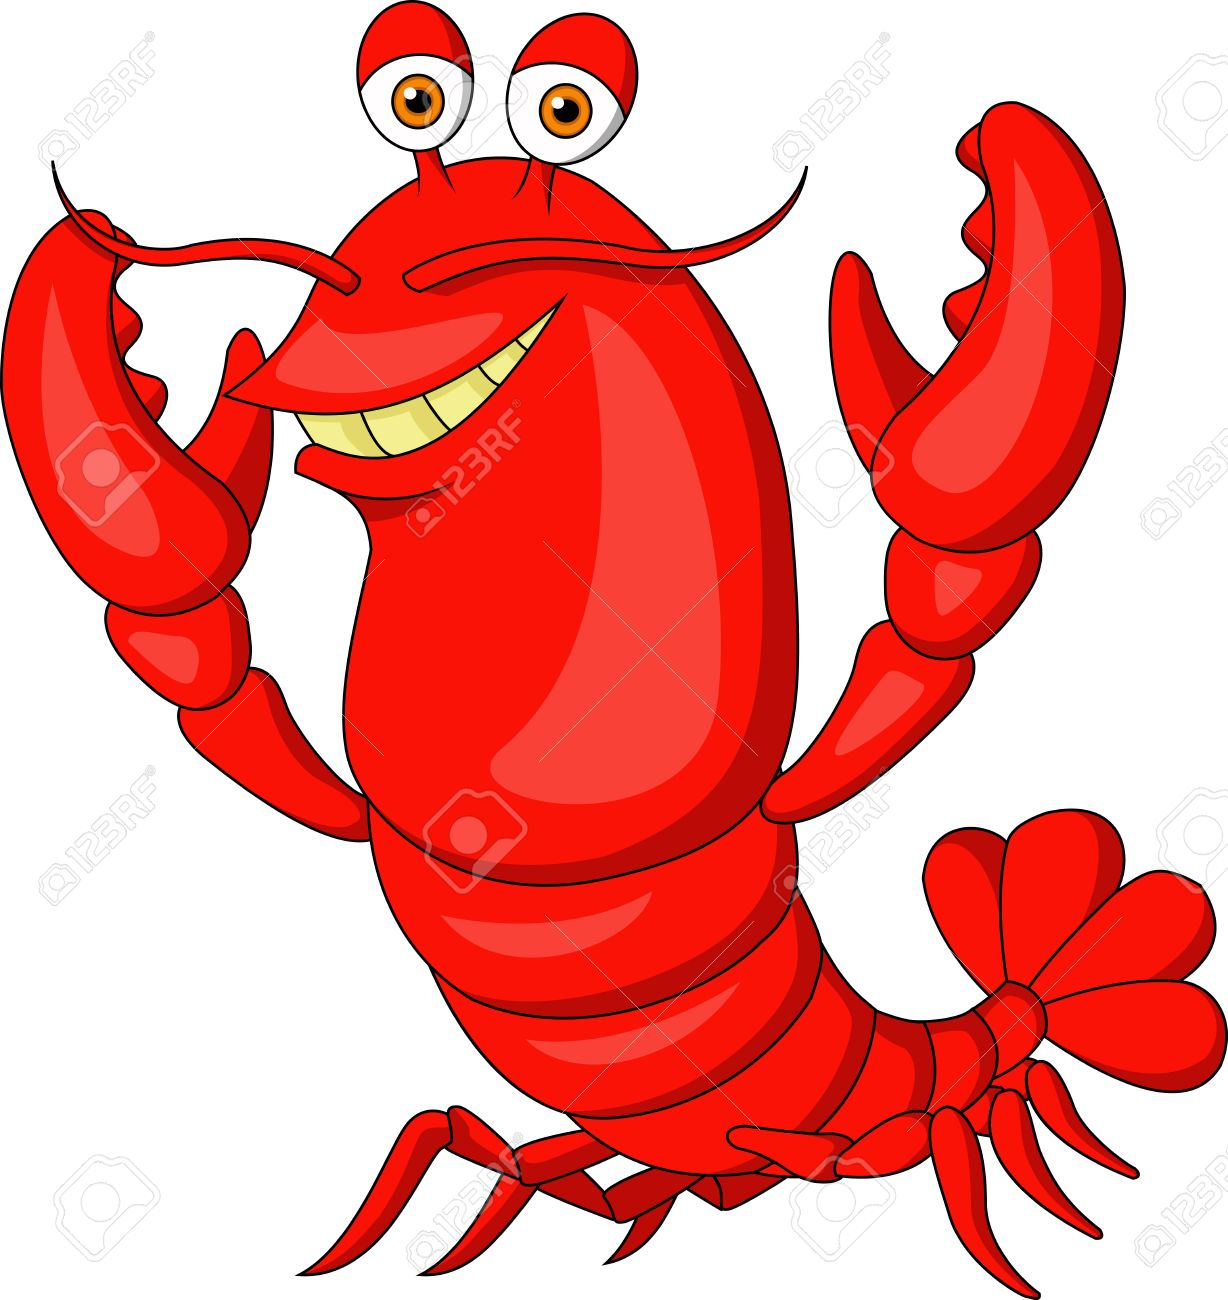 Lobster clipart #11, Download drawings